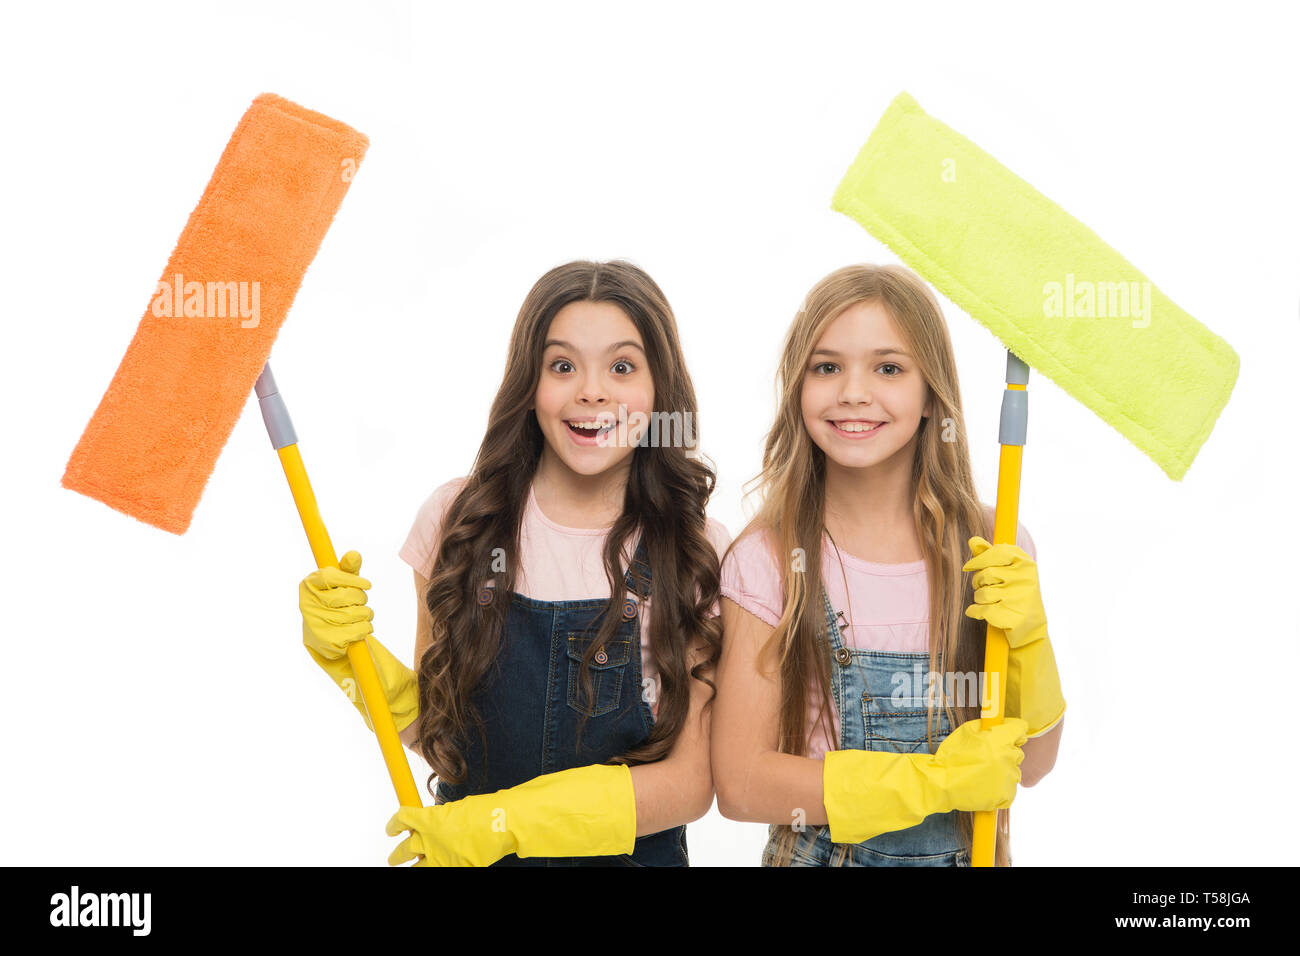 Adorable clean freaks. Cute girls holding mops for cleaning floor. Small cleaning ladies. Little cleaners with modern cleaning tools. Sanitation and cleaning service. - Stock Image